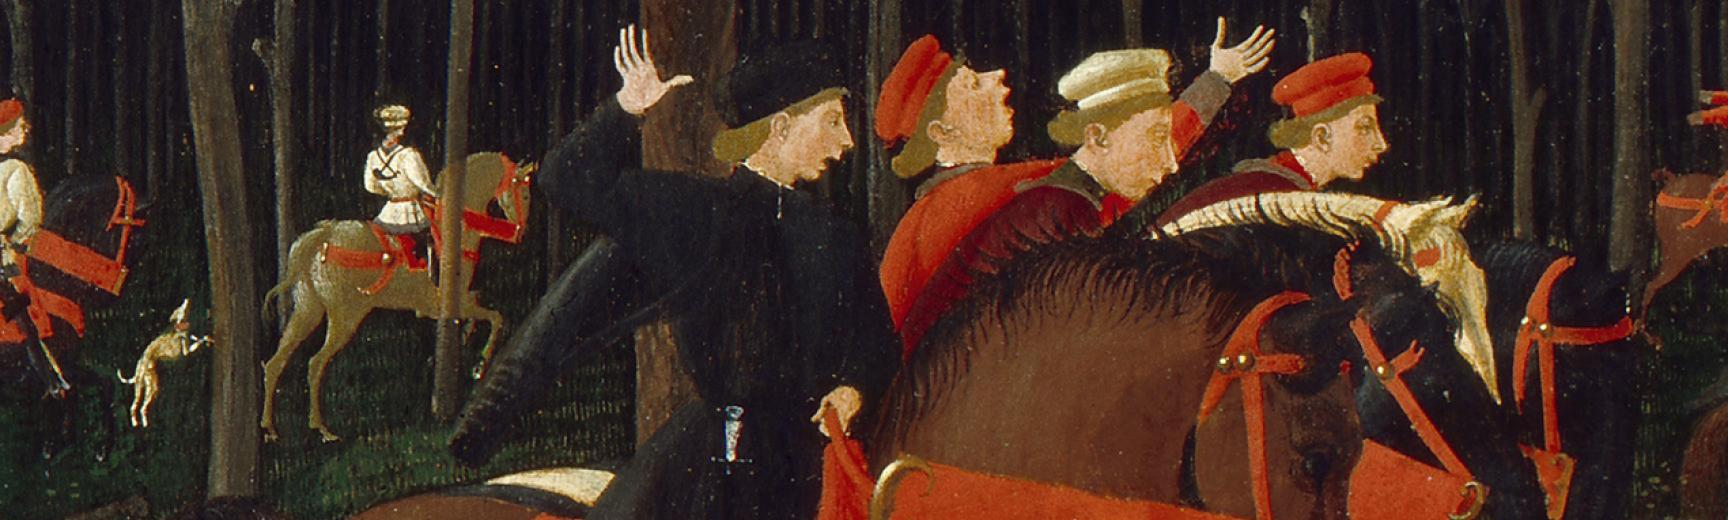 The Hunt in the Forest detail